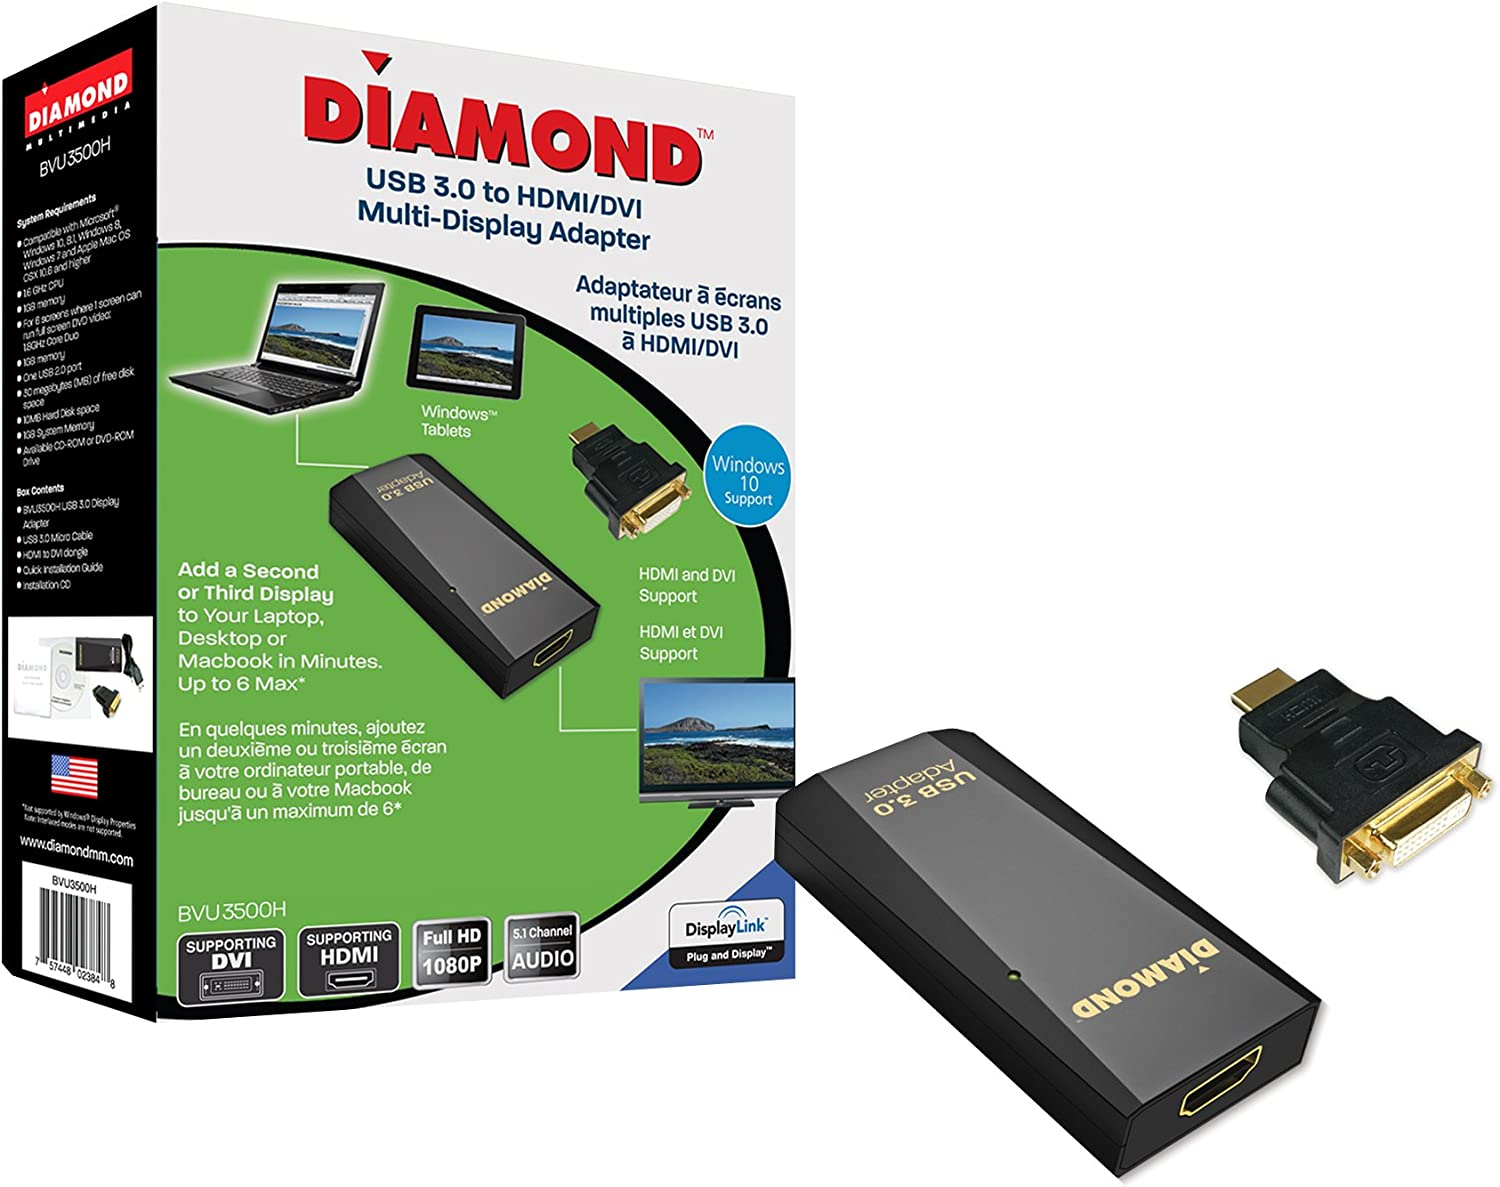 8 7 Diamond Multimedia USB 3.0 to VGA//DVI//HDMI Video Graphics Adapter up to 2048x1152 // 1920x1080 XP 8.1 MAC OS and Android 5.0 and Higher Windows 10